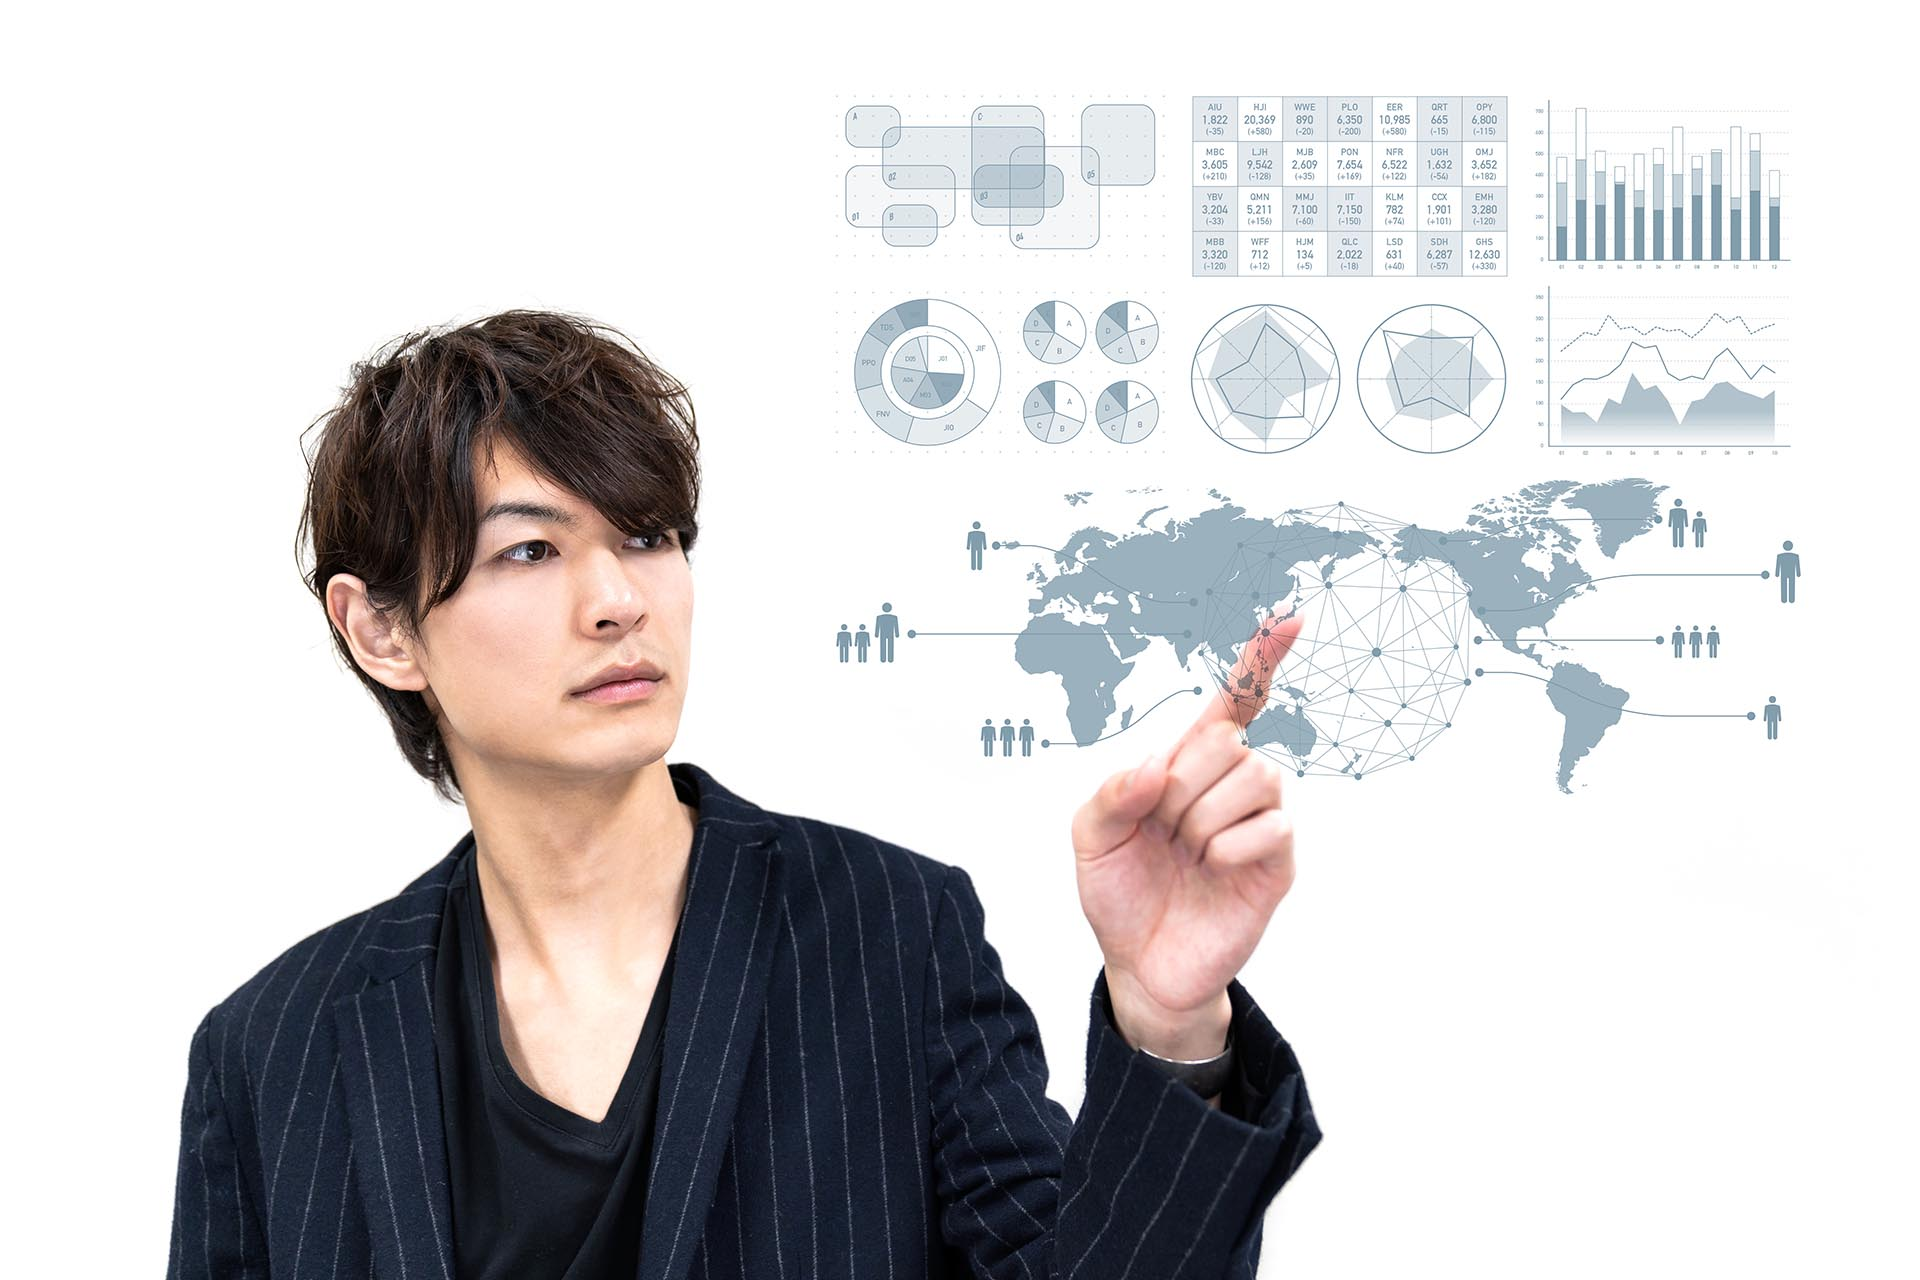 Japanese Market Research - Native Japanese Speakers - Digital Marketing For Asia